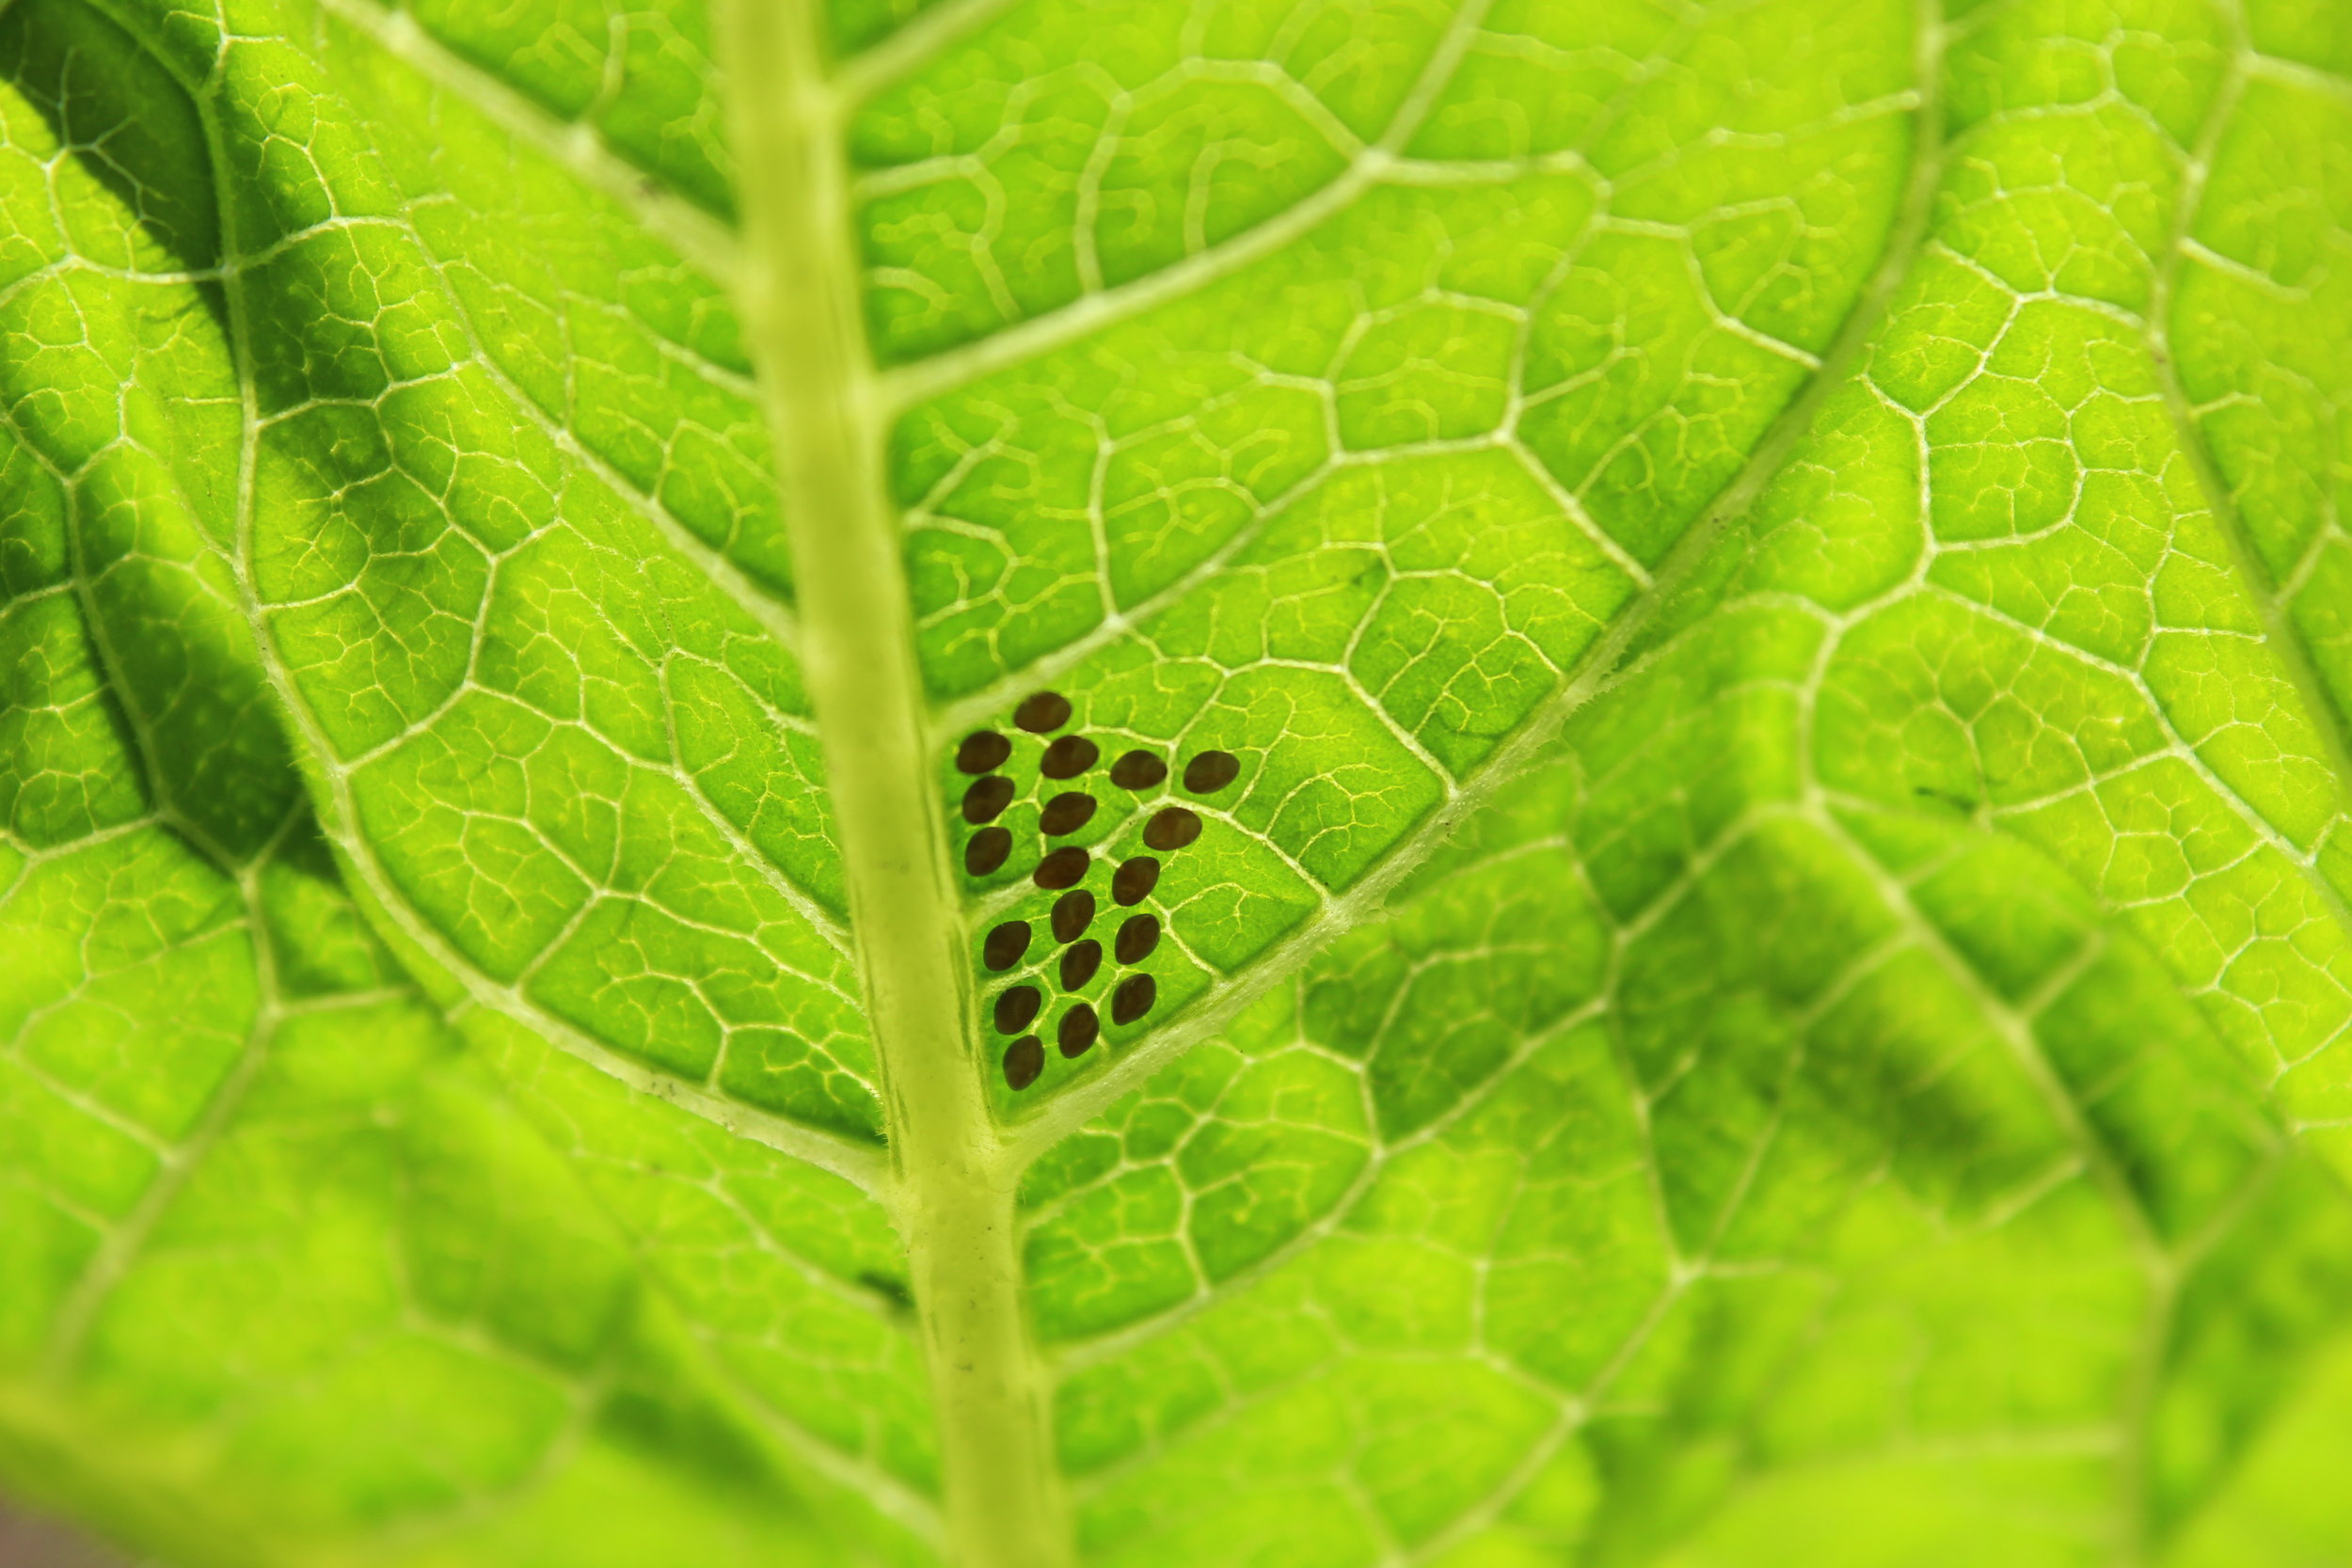 Squash bug eggs on the underside of a giant pumpkin leaf